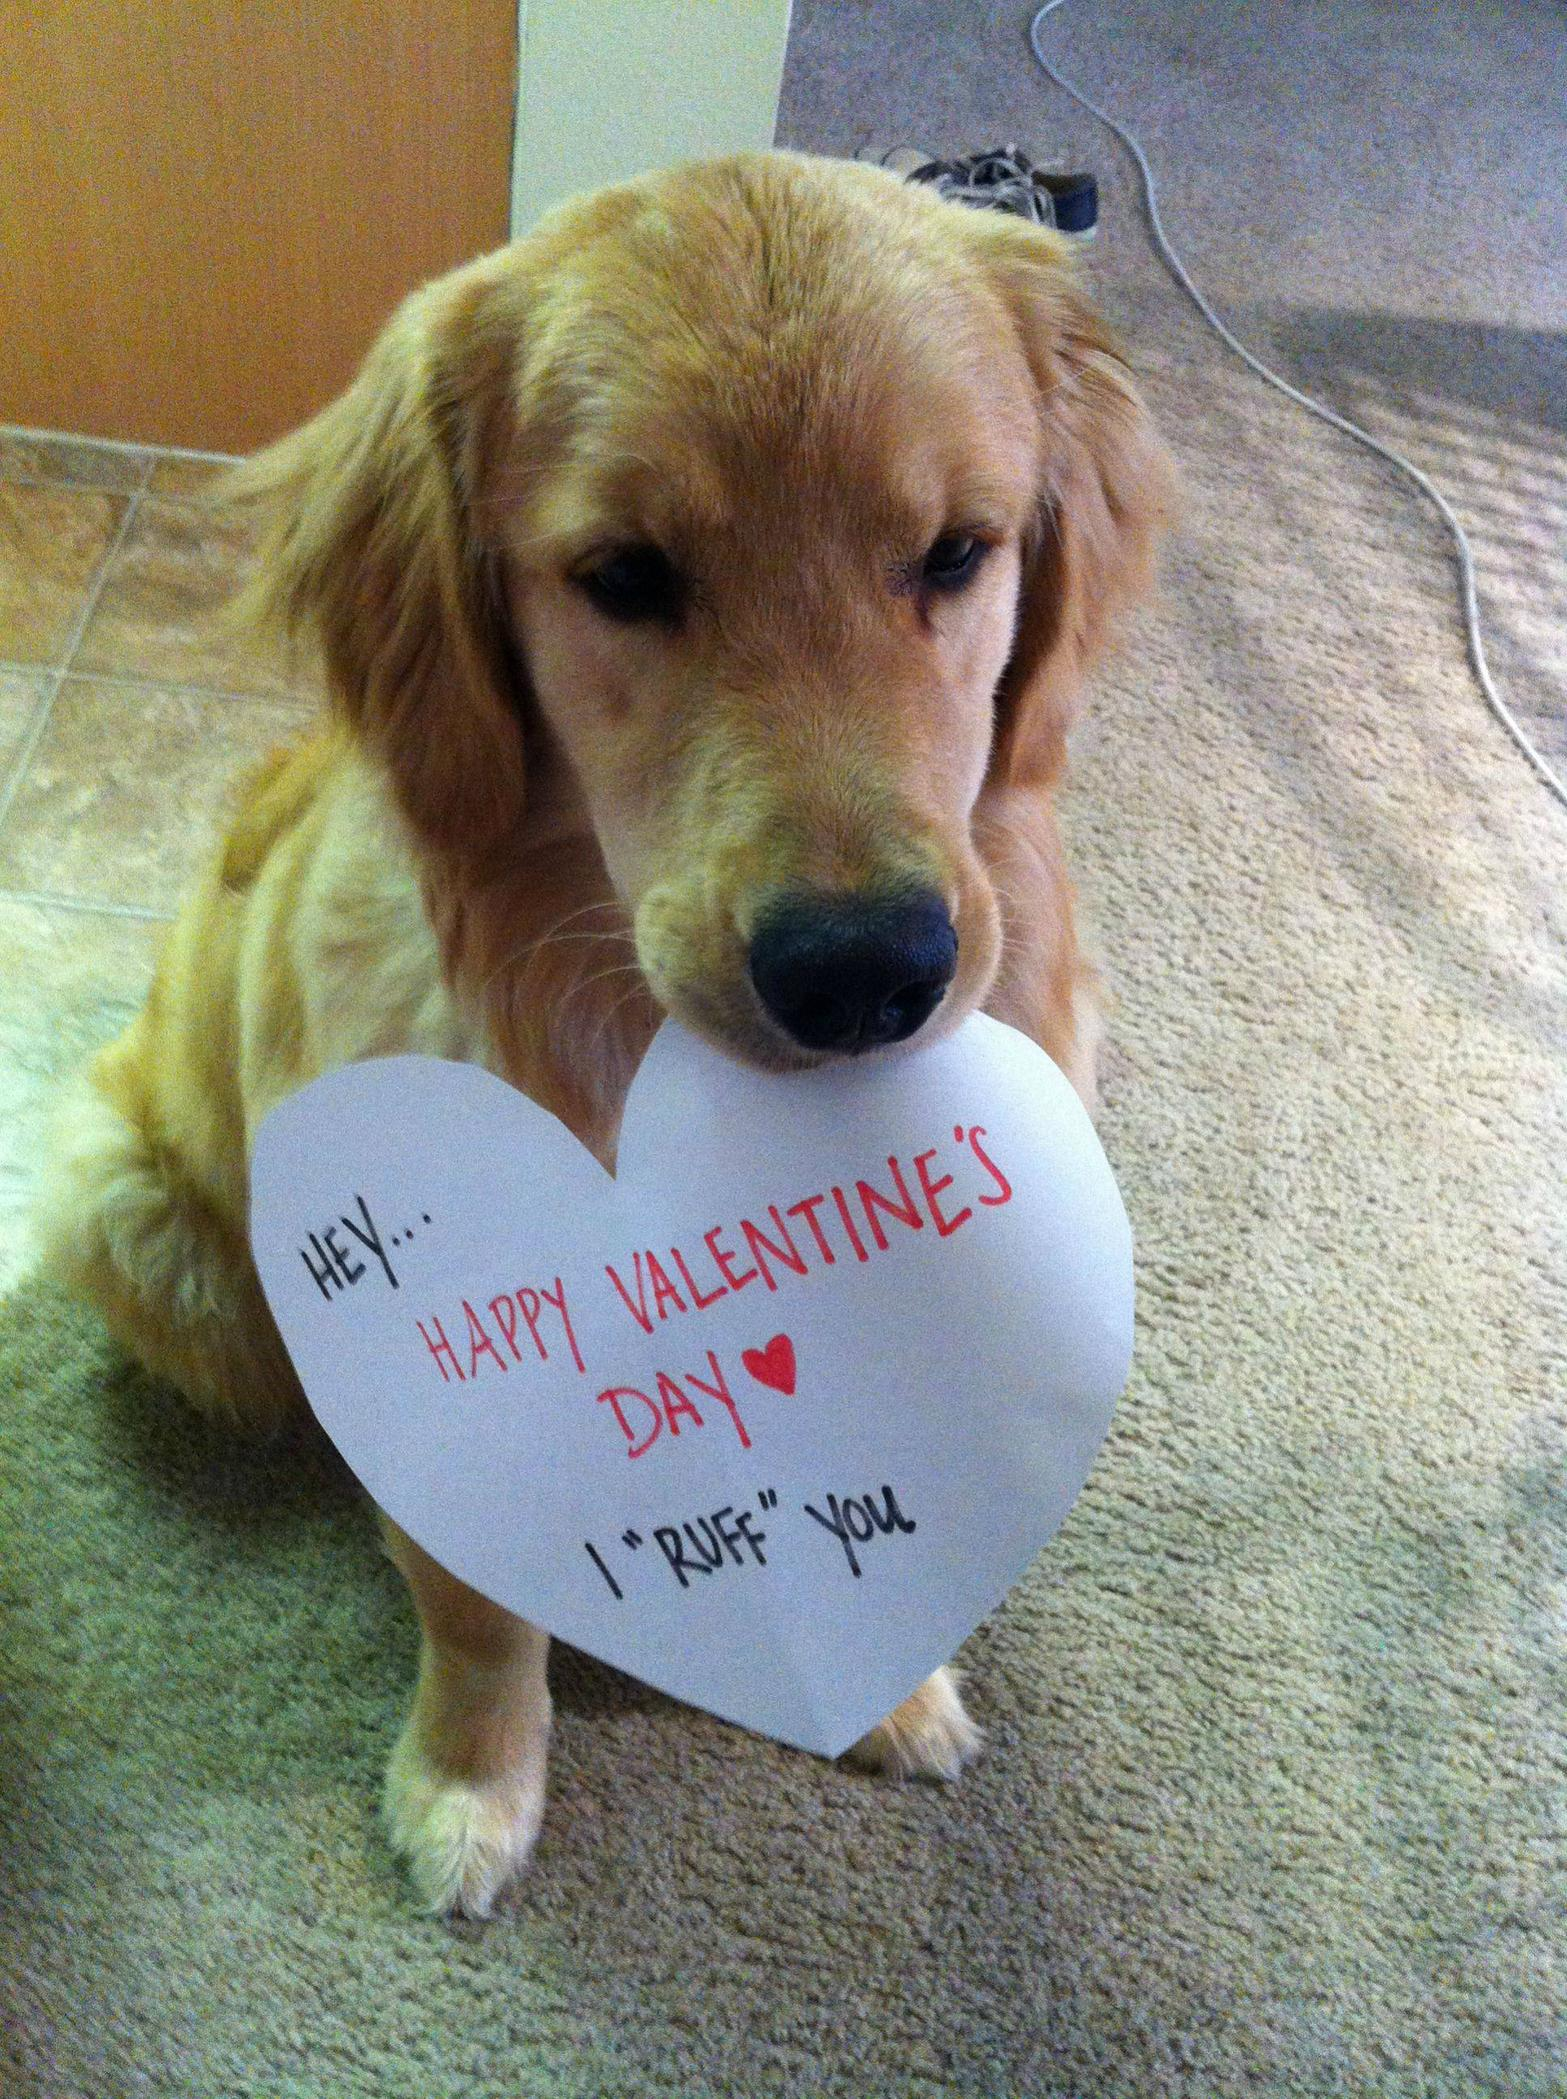 ugly dog valentines day memes - Dog Wishes You A Happy Valentine's Day Ruff You